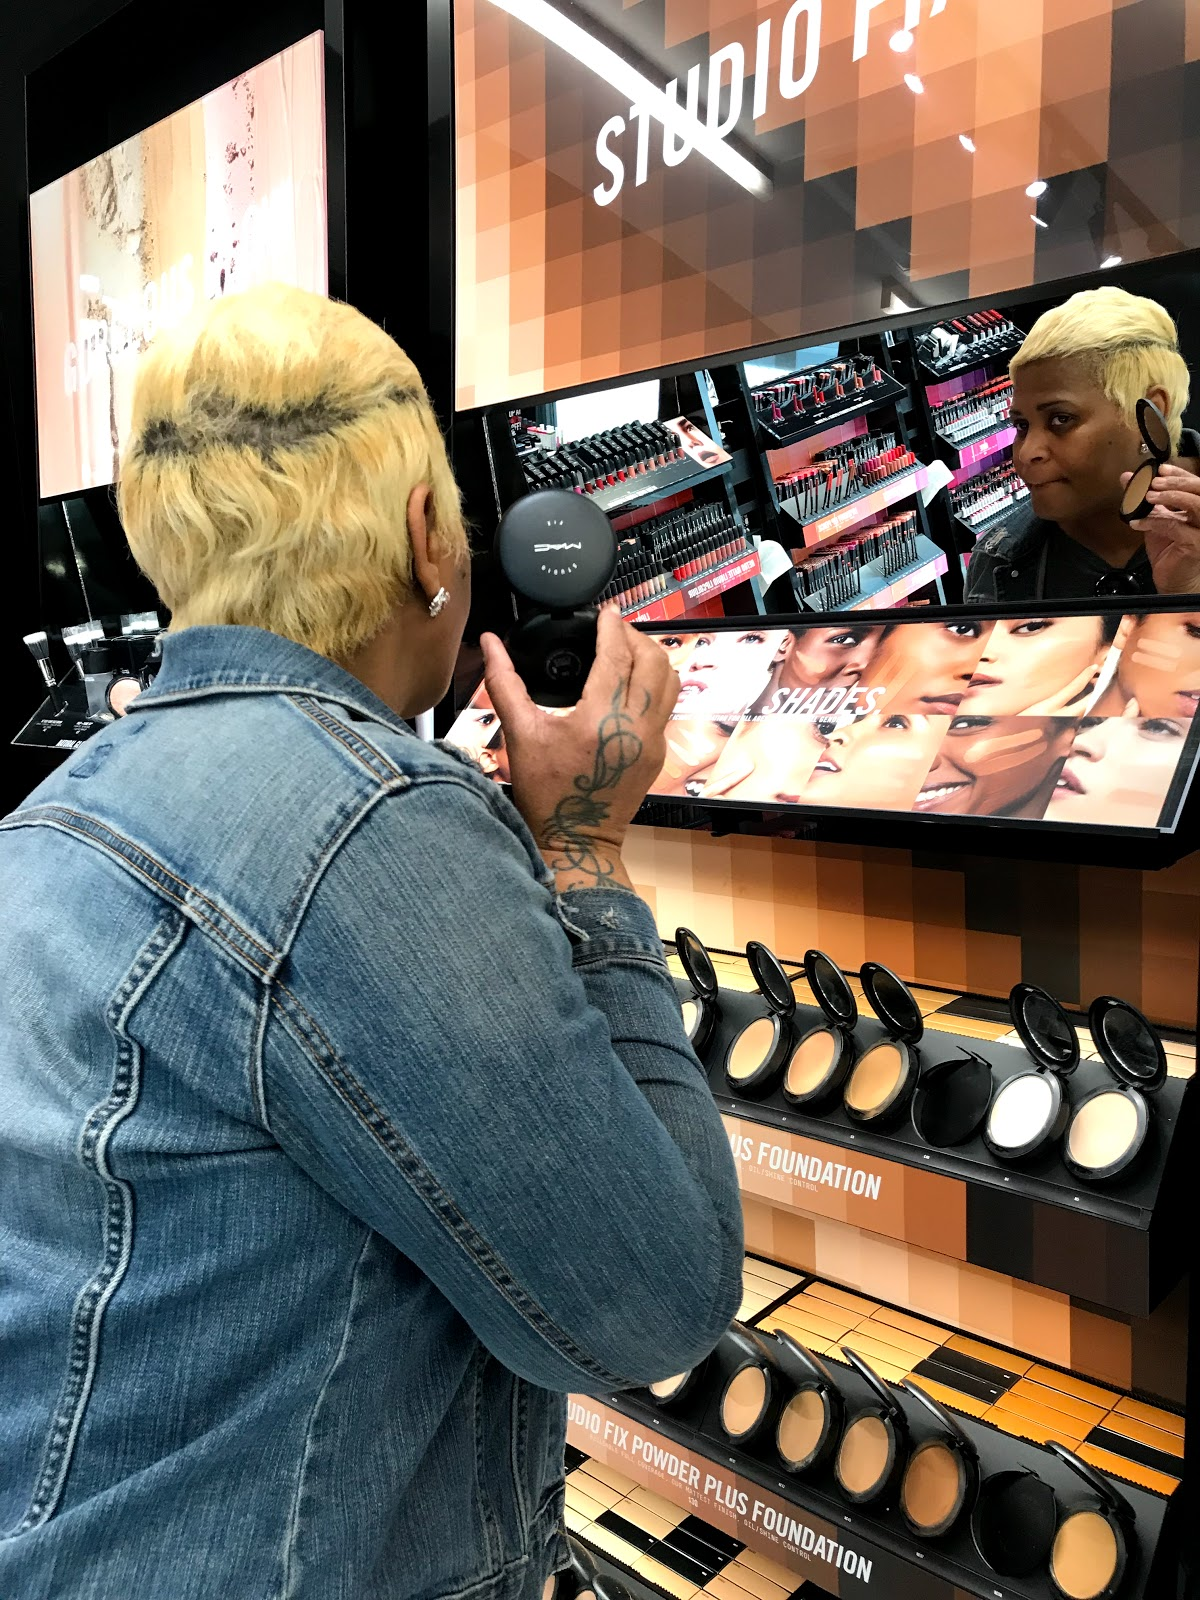 Image: Woman trying on makeup and sharing her point of view on the subjecToday I tried Rhianna Fenty and Mac Studio Fix  Foundation. But the results weren't what I expected, and my experience left me feeling the pressure to take better care of my beauty needs.t.